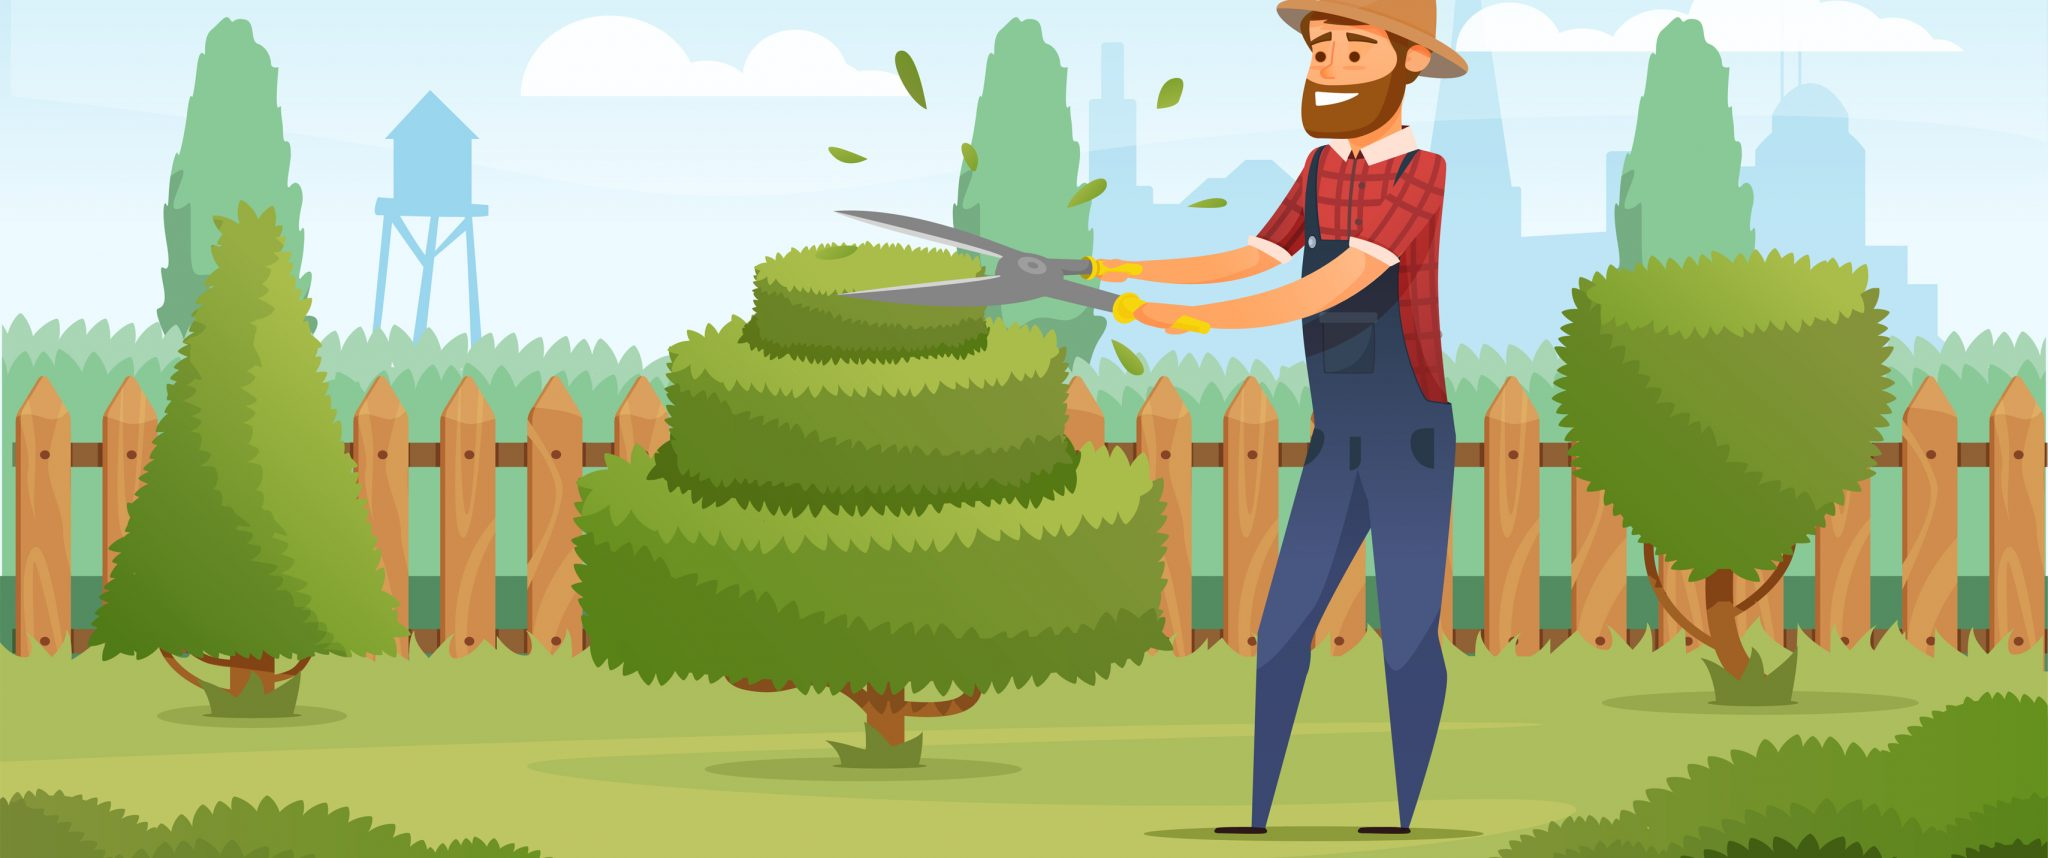 Windows 10 deployment: Pruning and pruning and pruning again